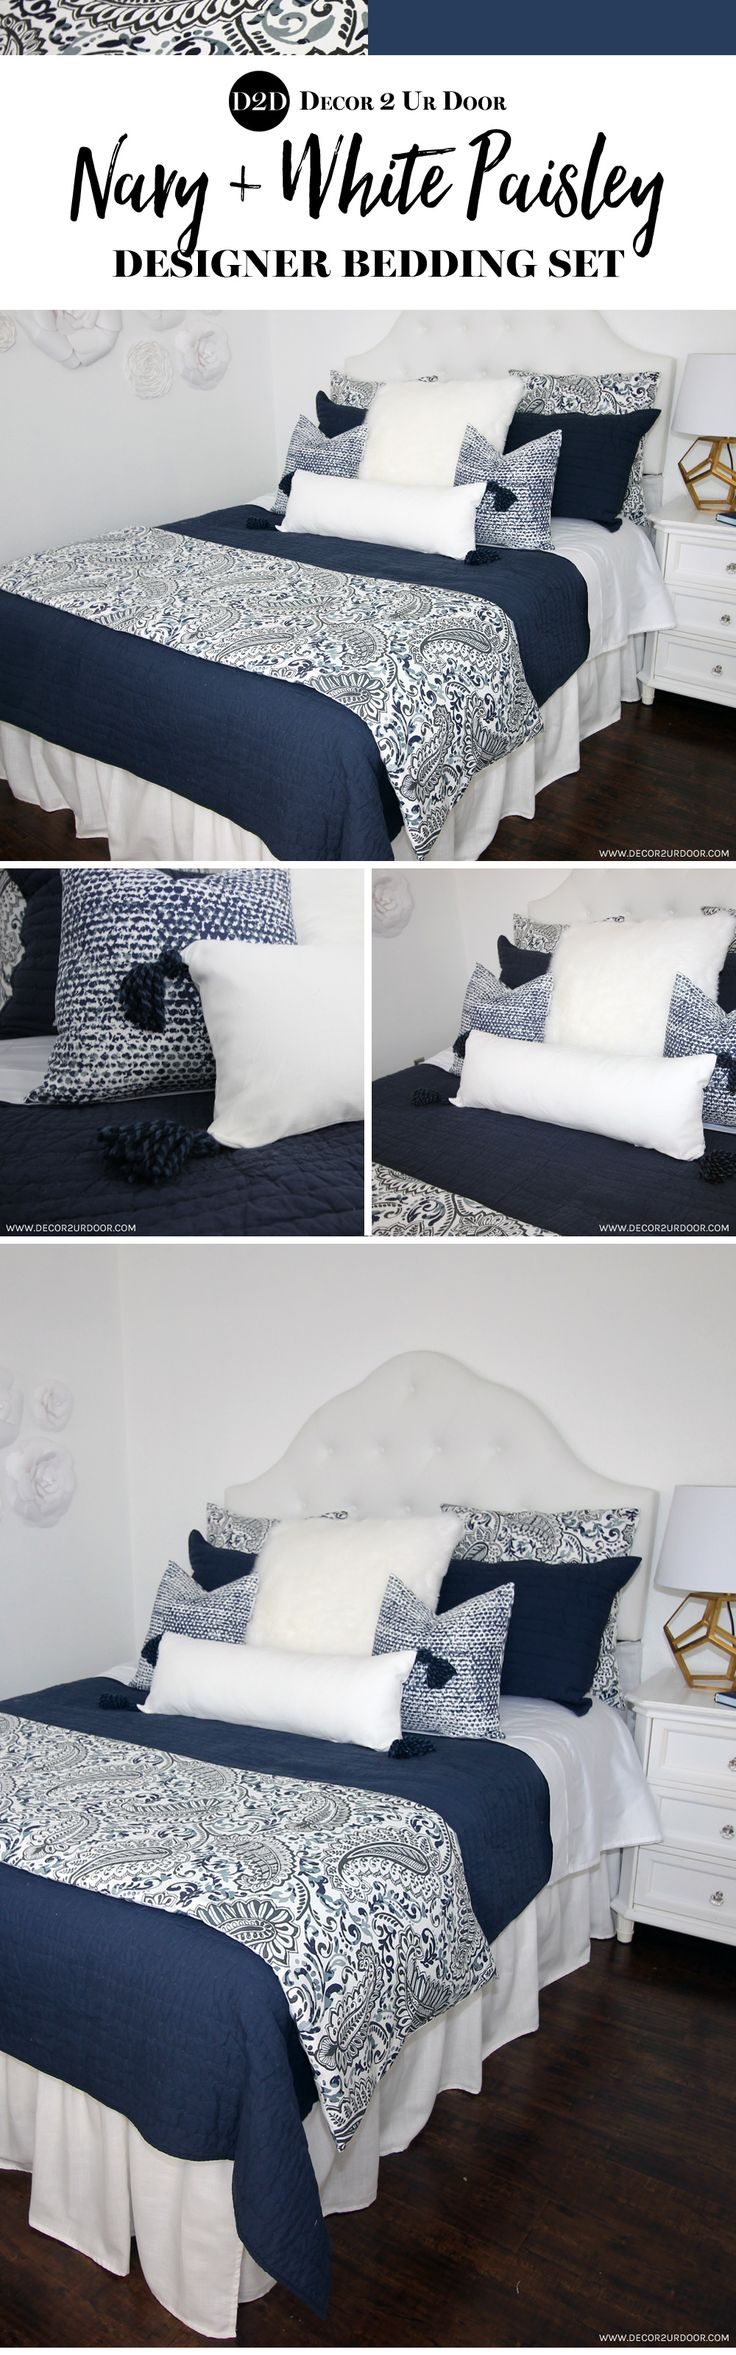 Best 25+ Navy master bedroom ideas on Pinterest | Navy bedroom ...